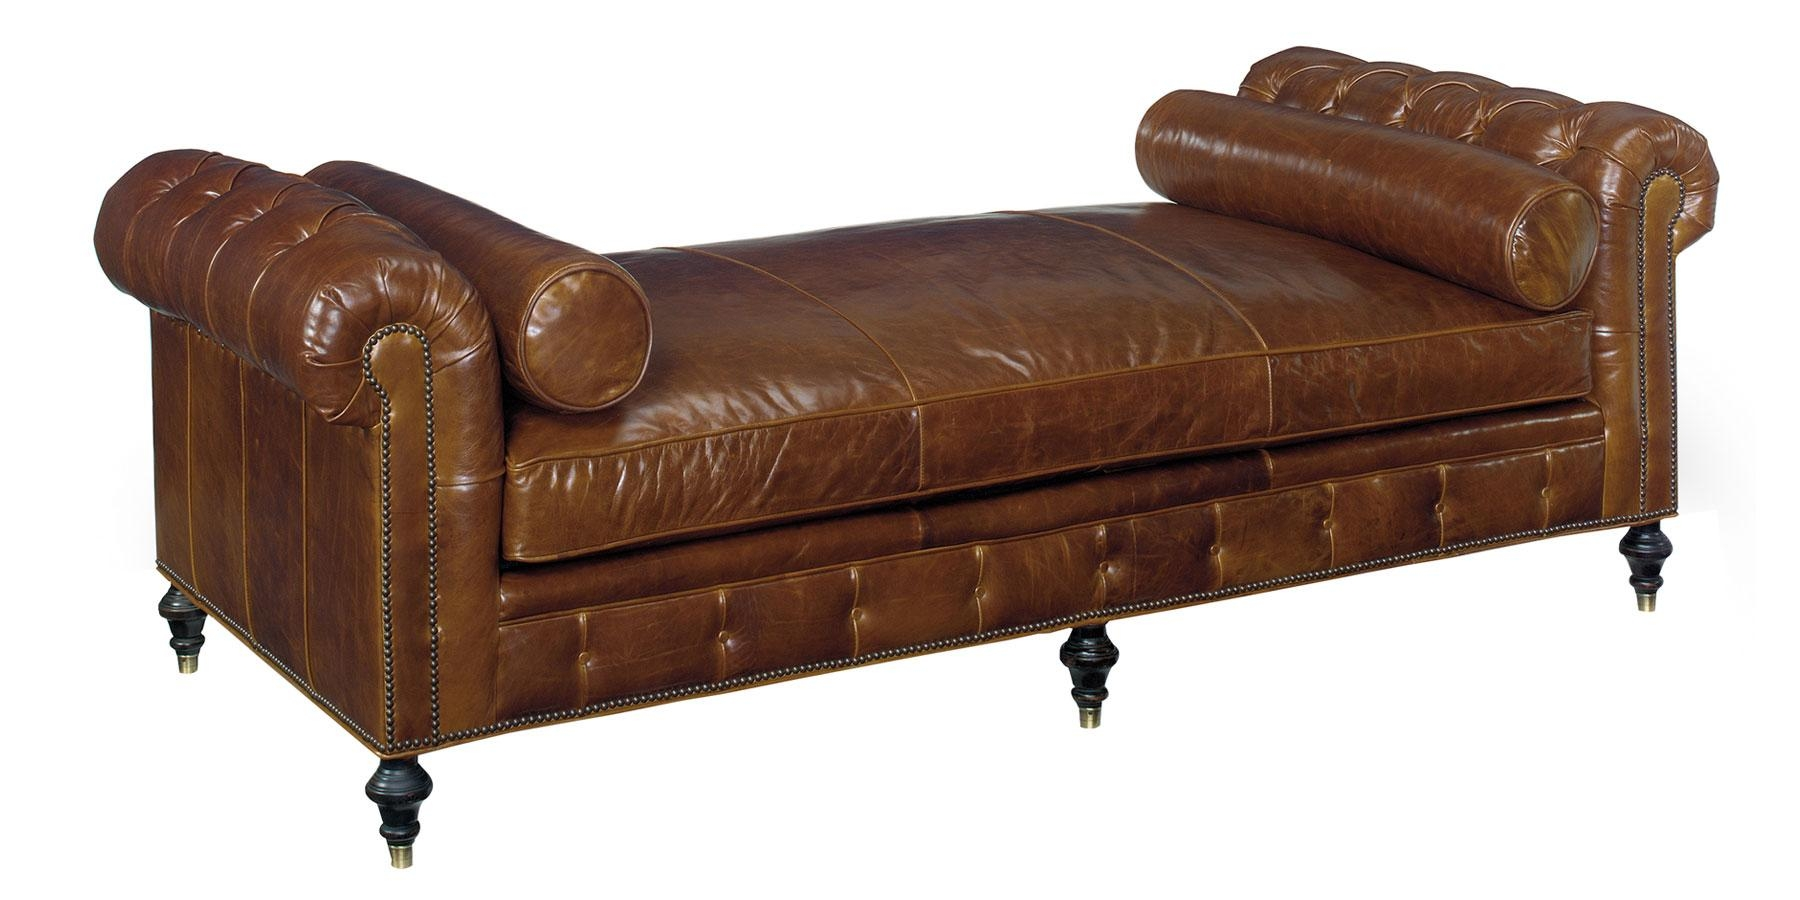 Leather Tufted Chesterfield Daybed With Bench Seat | Club Furniture Within Bench Style Sofas (Image 12 of 20)